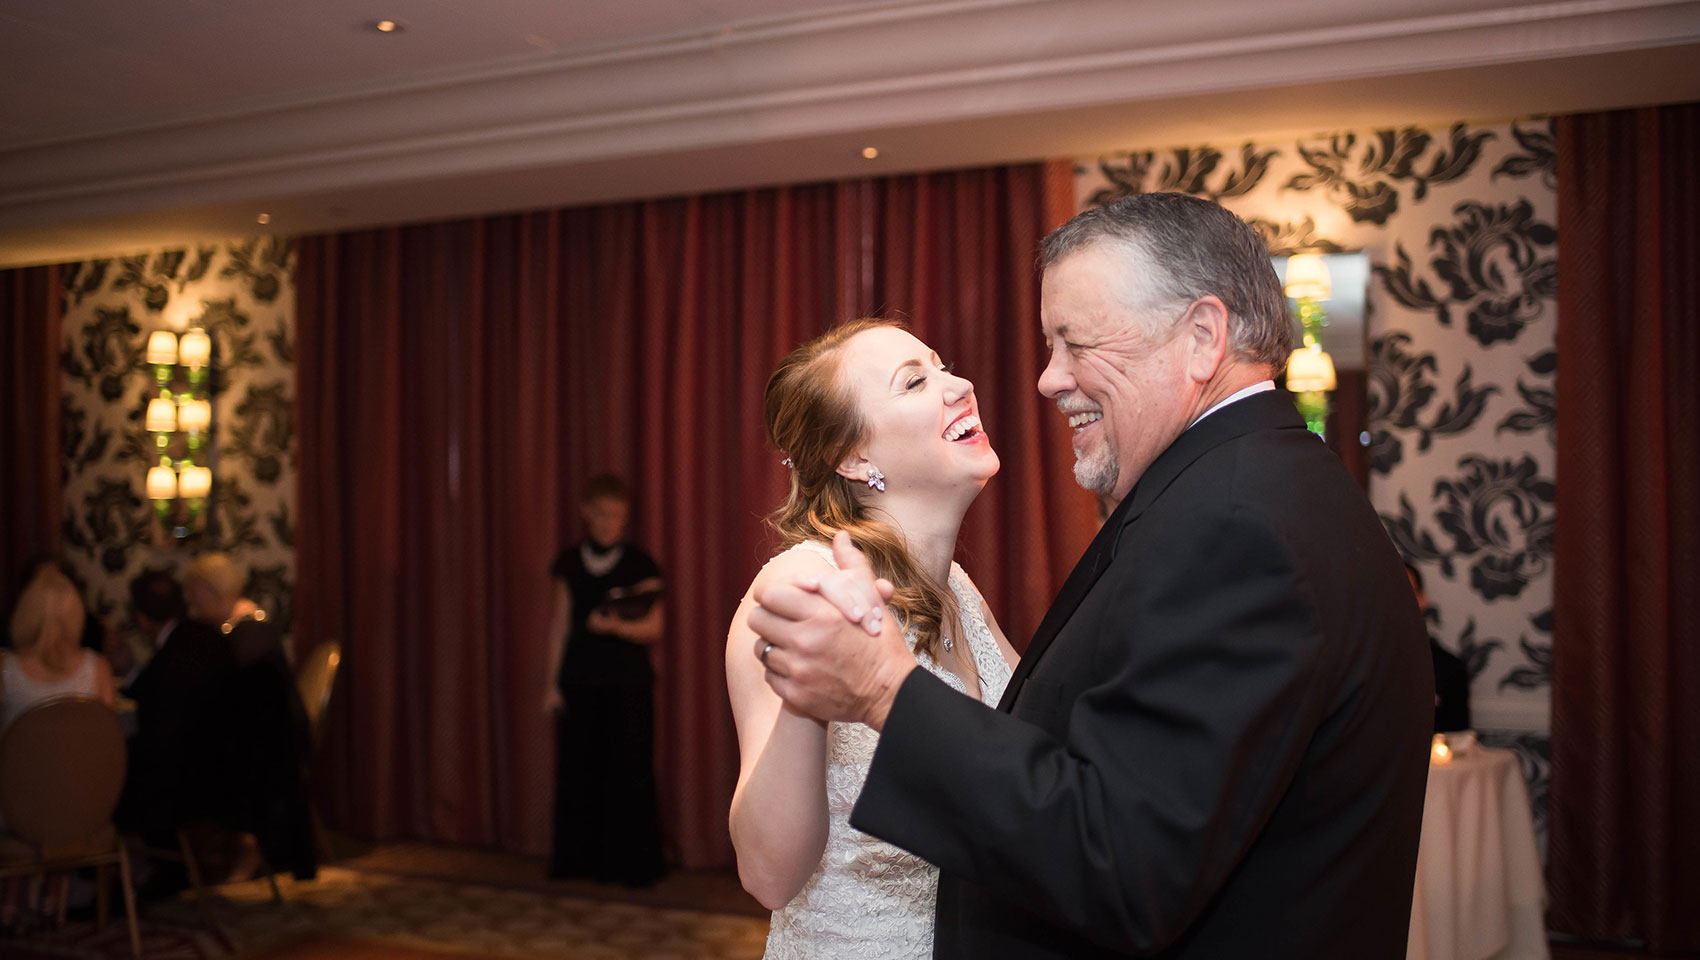 Joanna + Glenn Father Daughter Dance - JadeNikkolePhotography